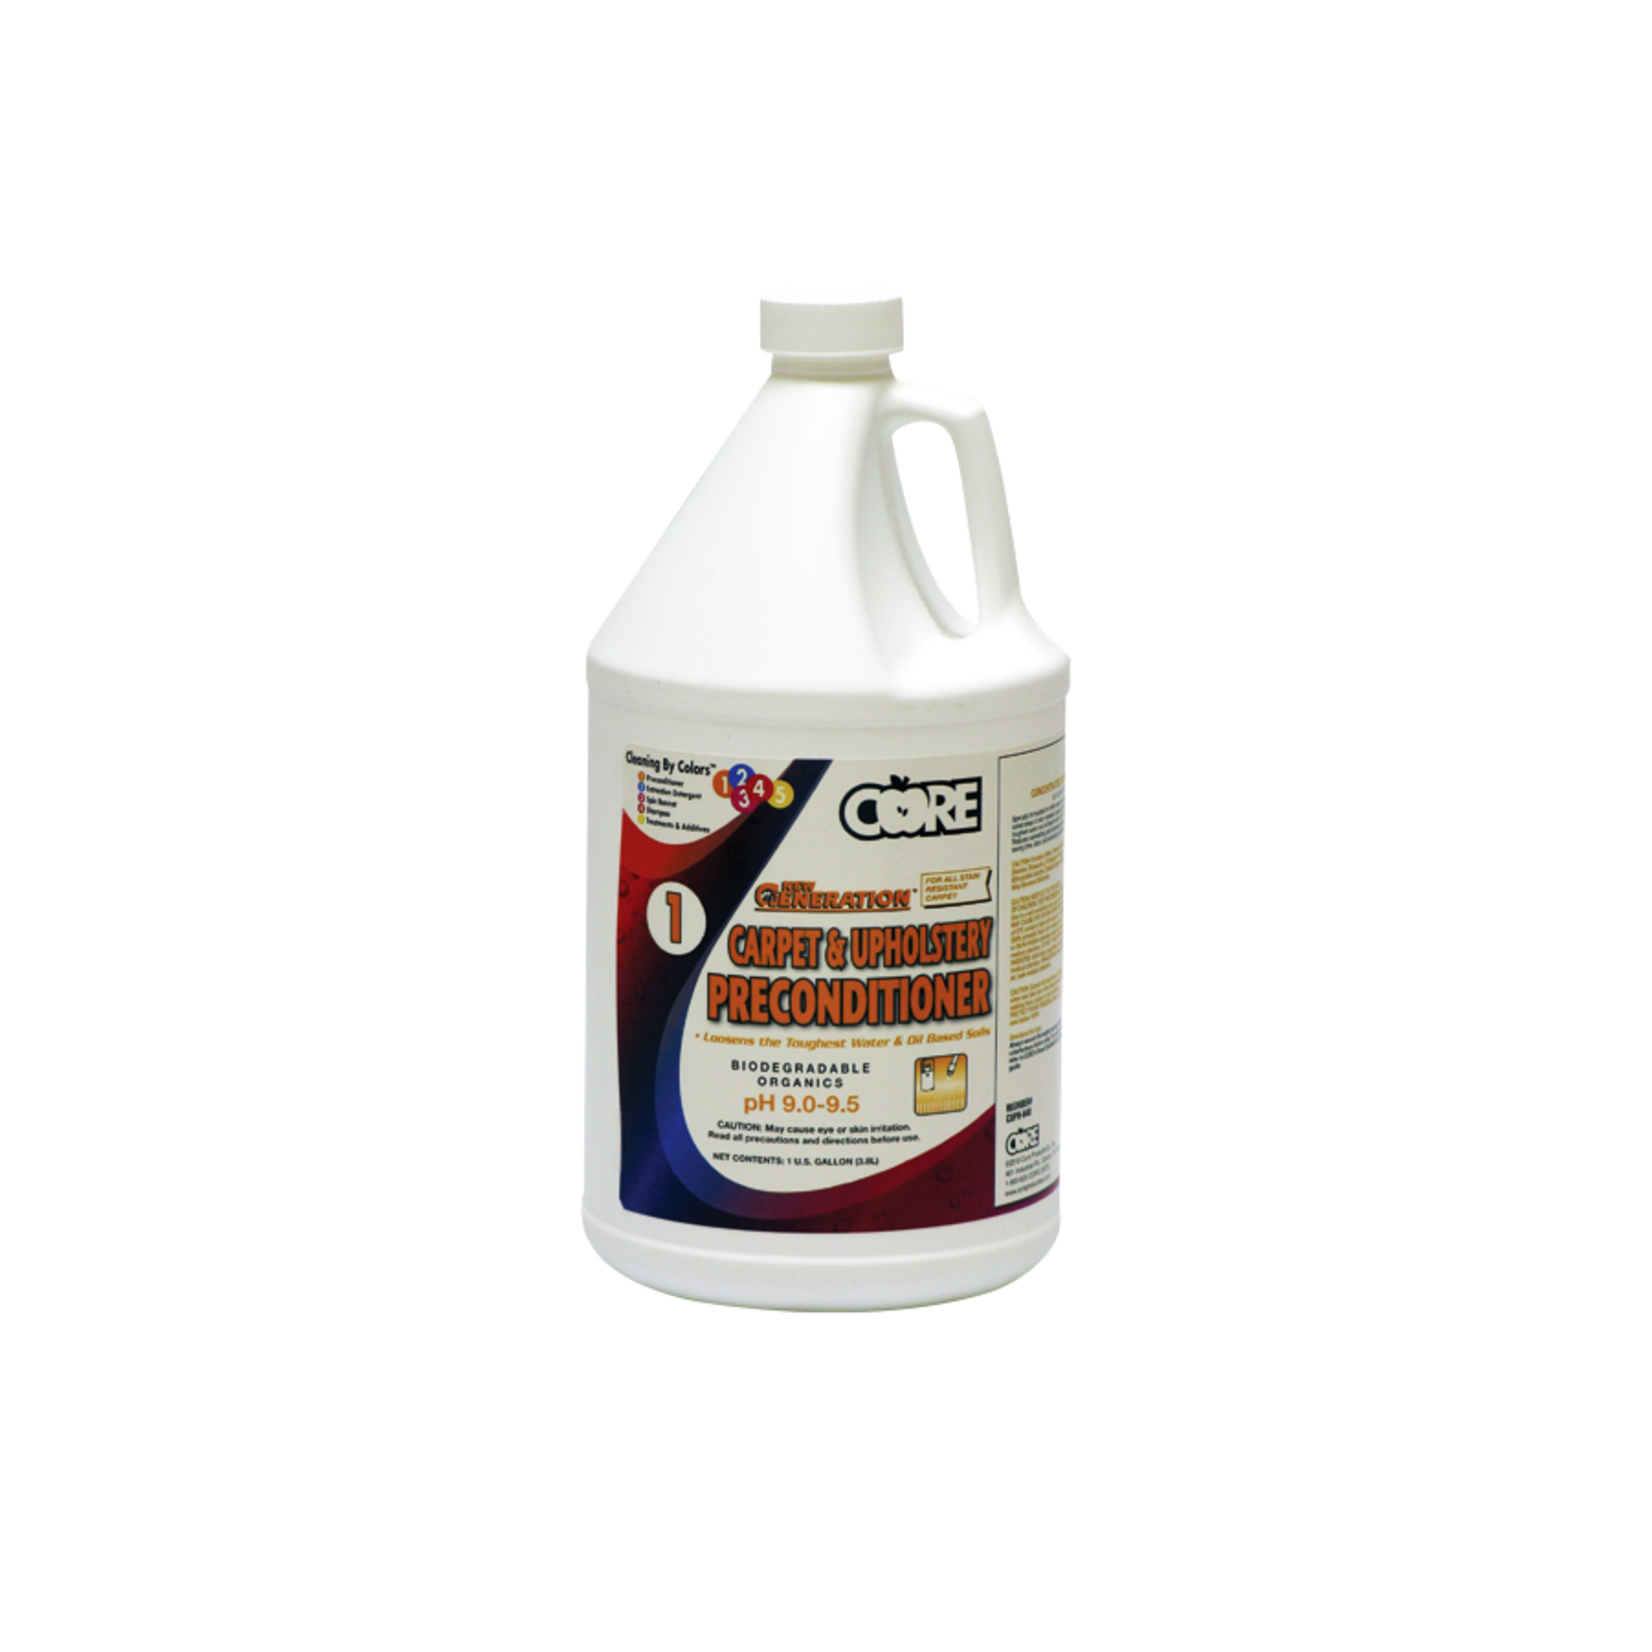 Core Products NEW GENERATION™ CARPET & UPHOLSTERY PRE-CONDITIONER - GALLON